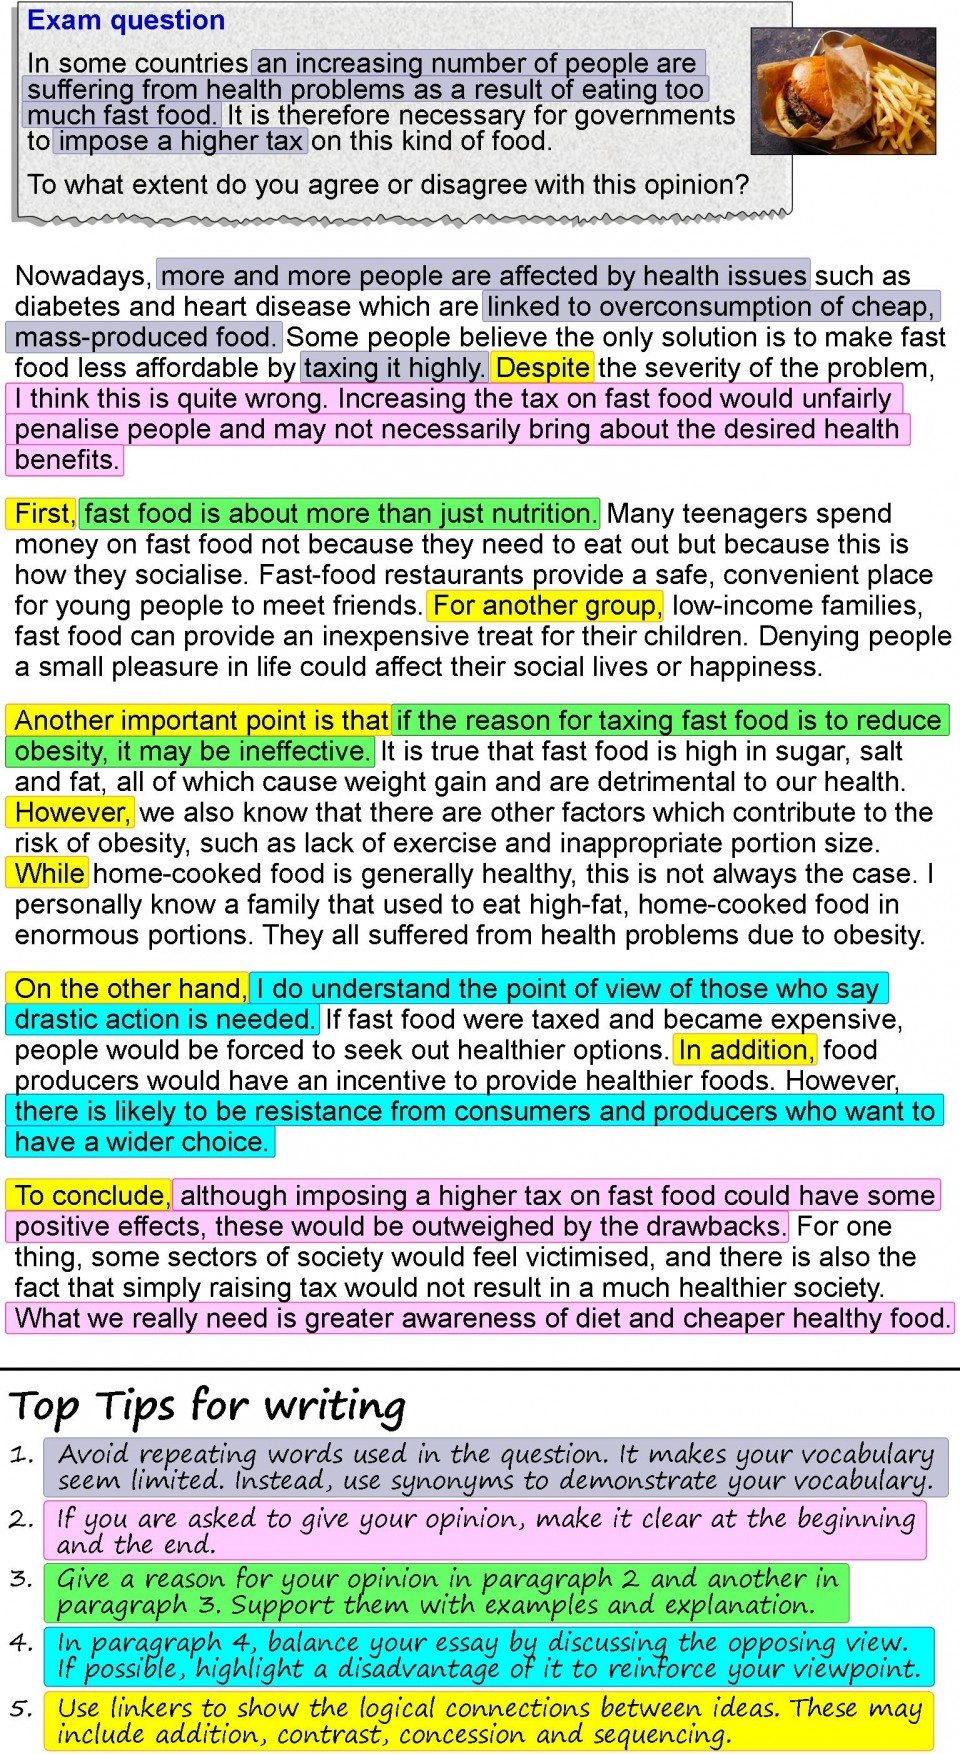 001 Opinion Essay About Fast Food Example An 4 Unbelievable British Council Short 960